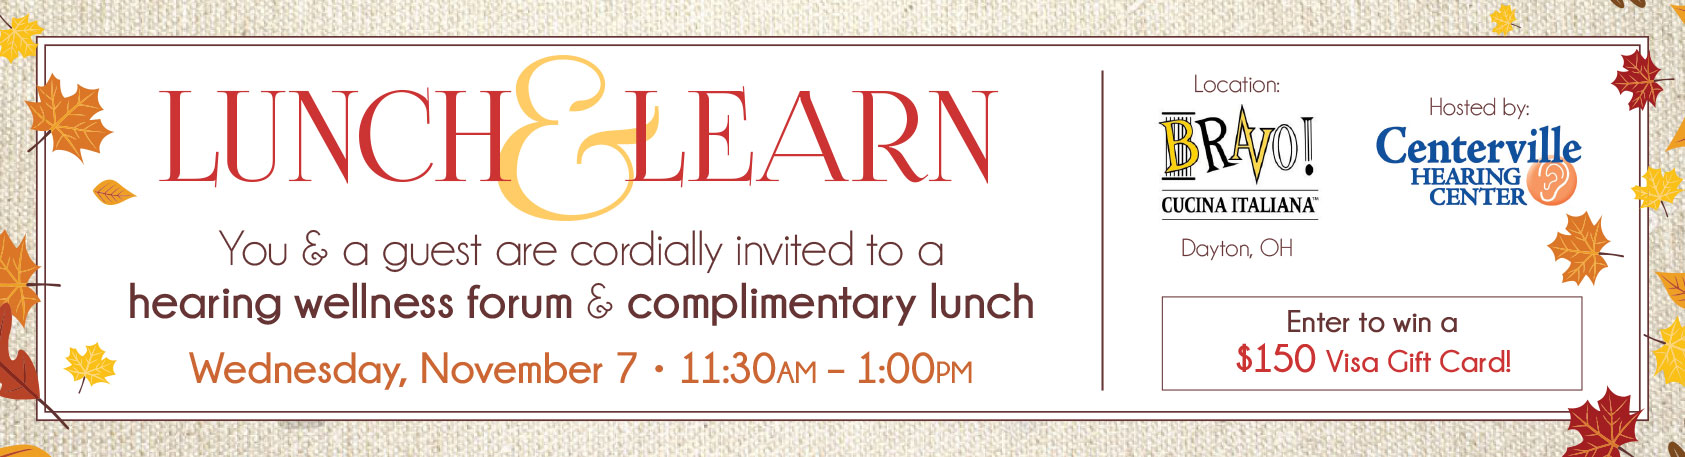 Lunch & Learn Banner - Centerville Hearing Center